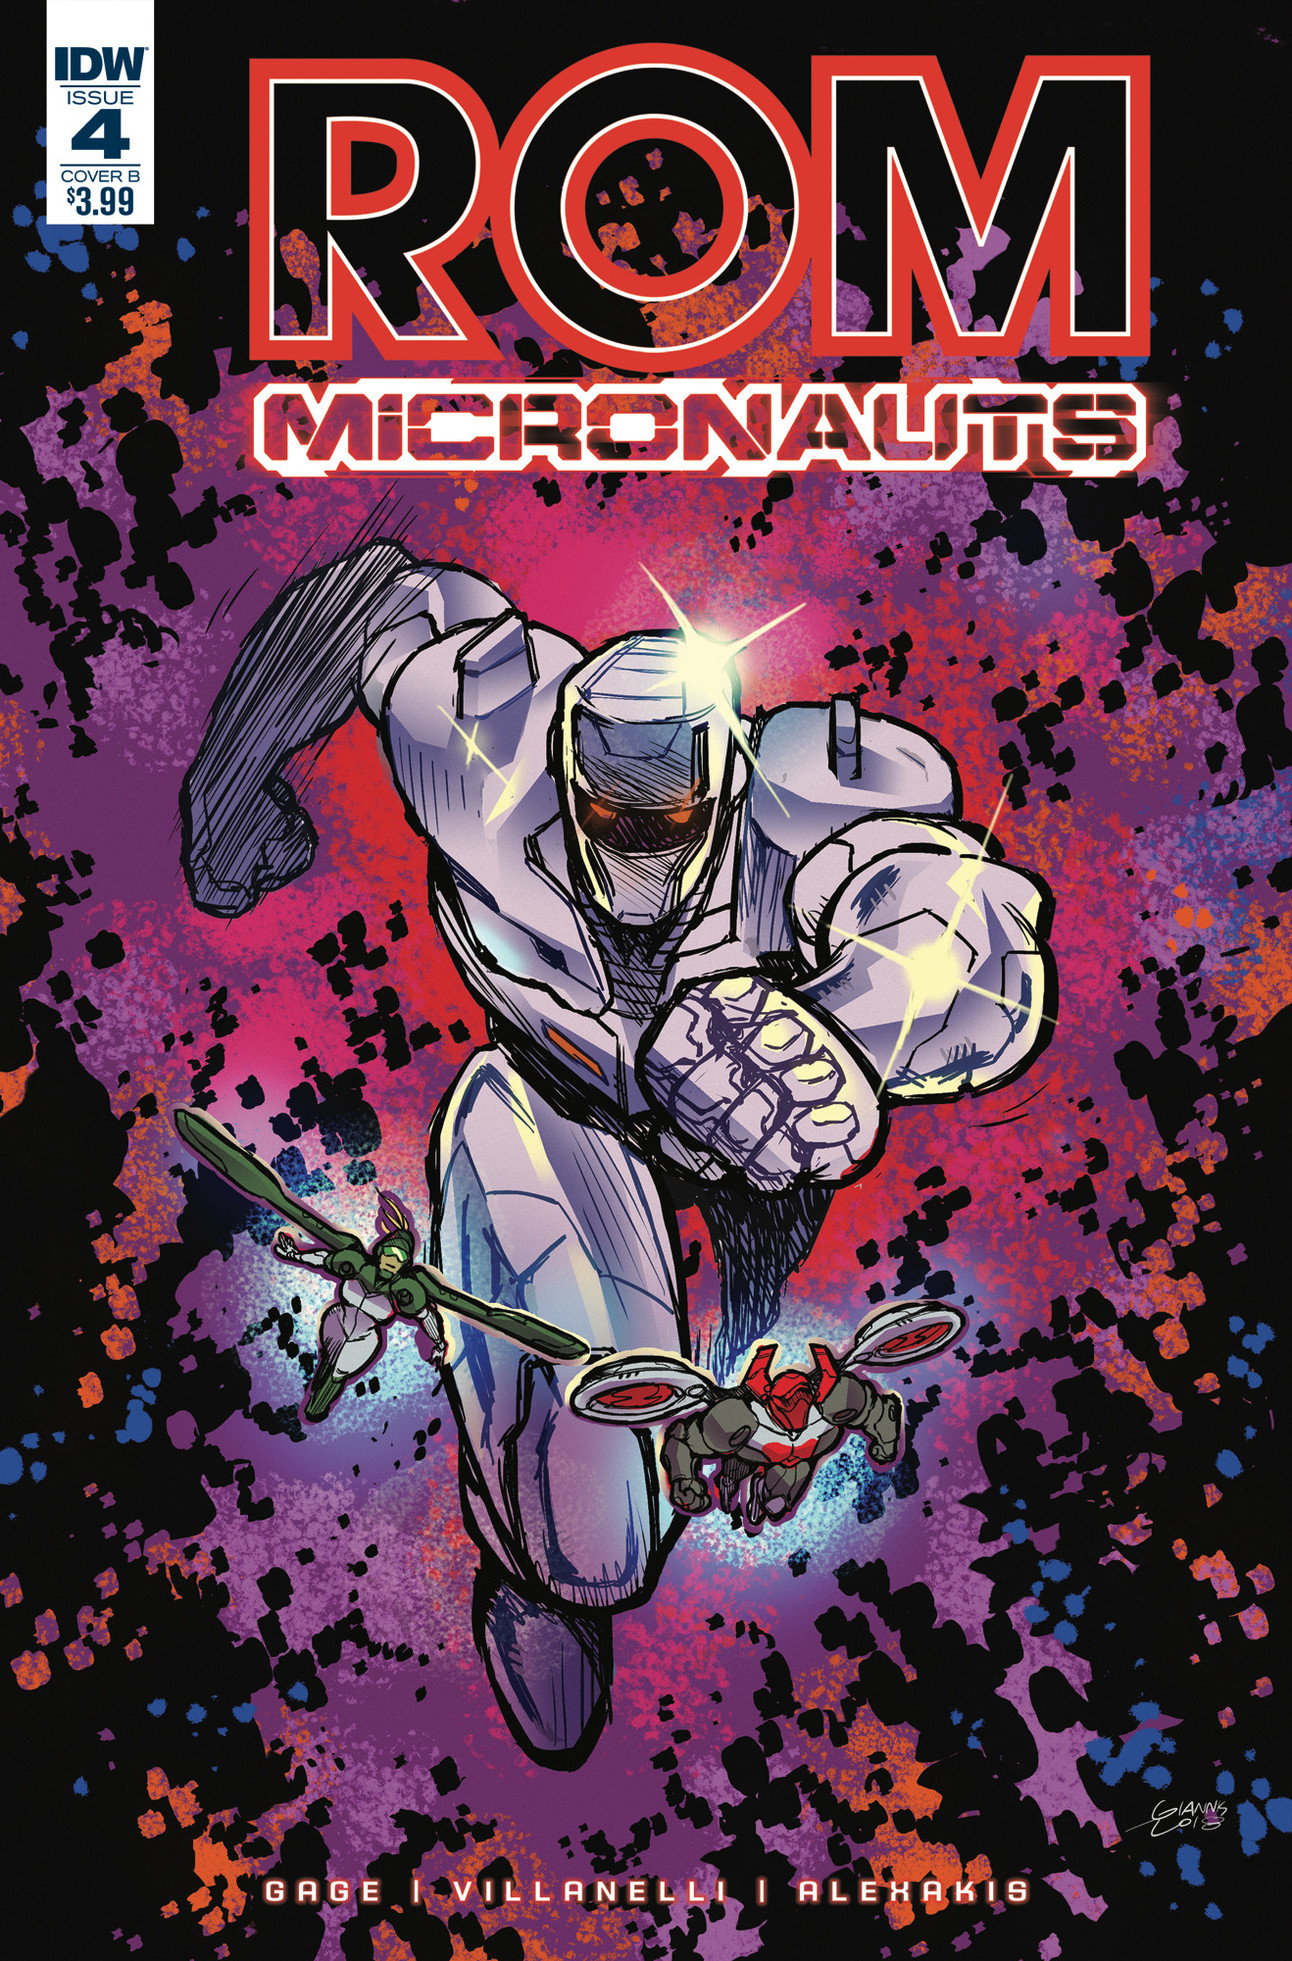 idw_rom_and_the_micronauts_4_cover.jpg